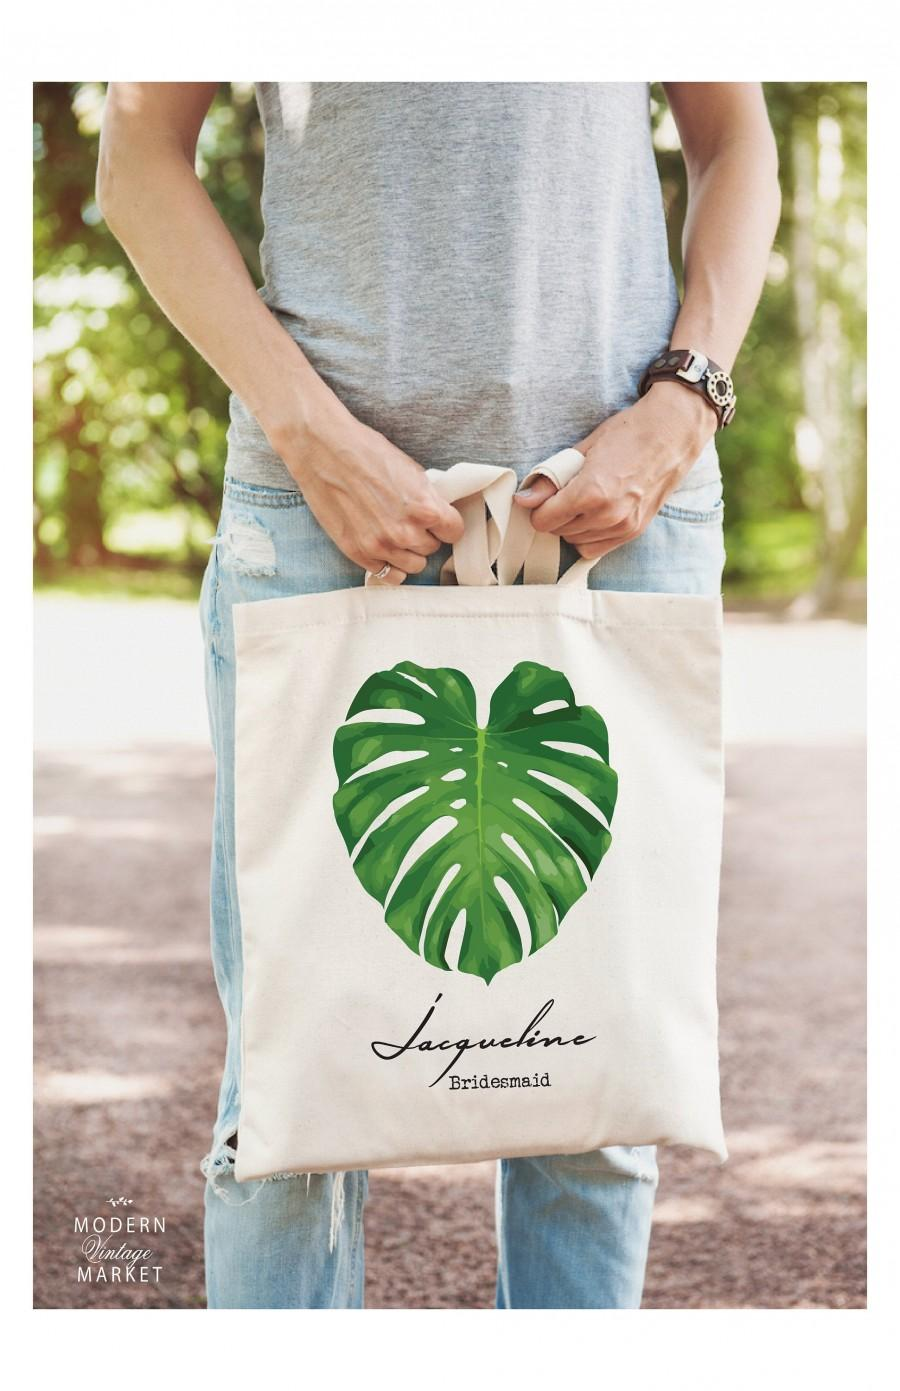 Hochzeit - Personalized Tote Bag With Palm Leaf,Bridesmaid Gifts,Bridesmaid Tote,Beach Bag,Bridal Party Gifts,Wedding Party Gifts,Personalized Tote Bag